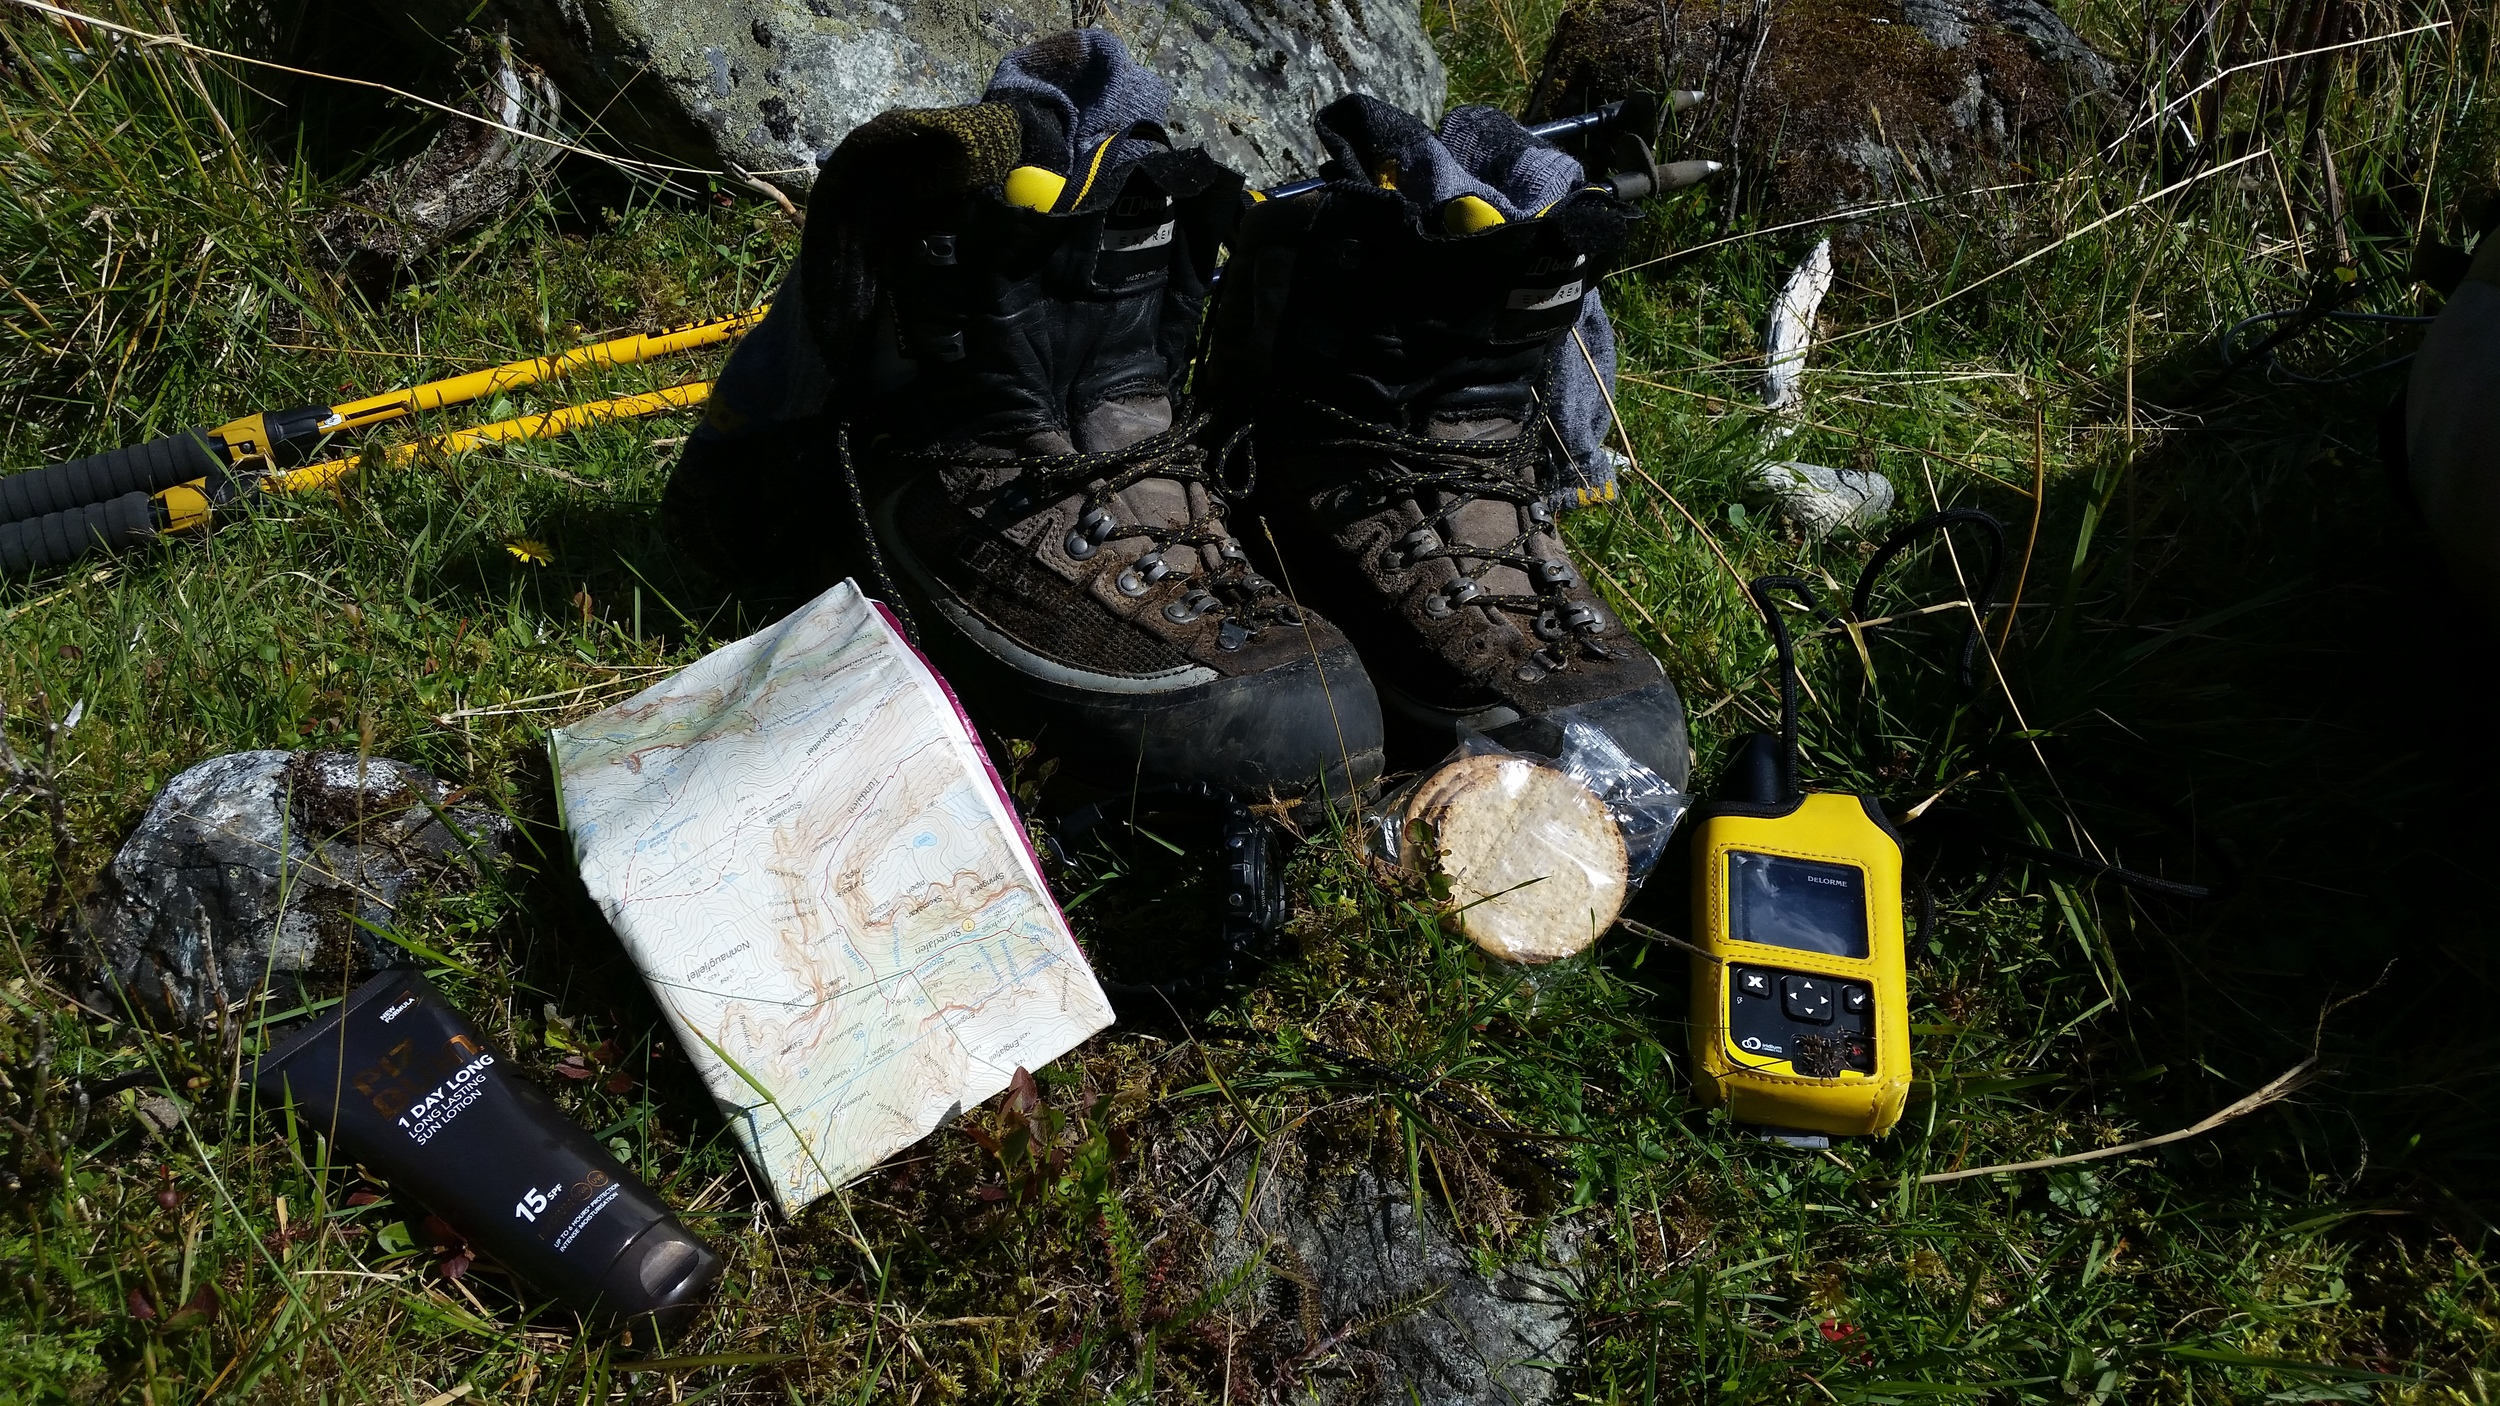 My exped kit (complete with oatcakes)